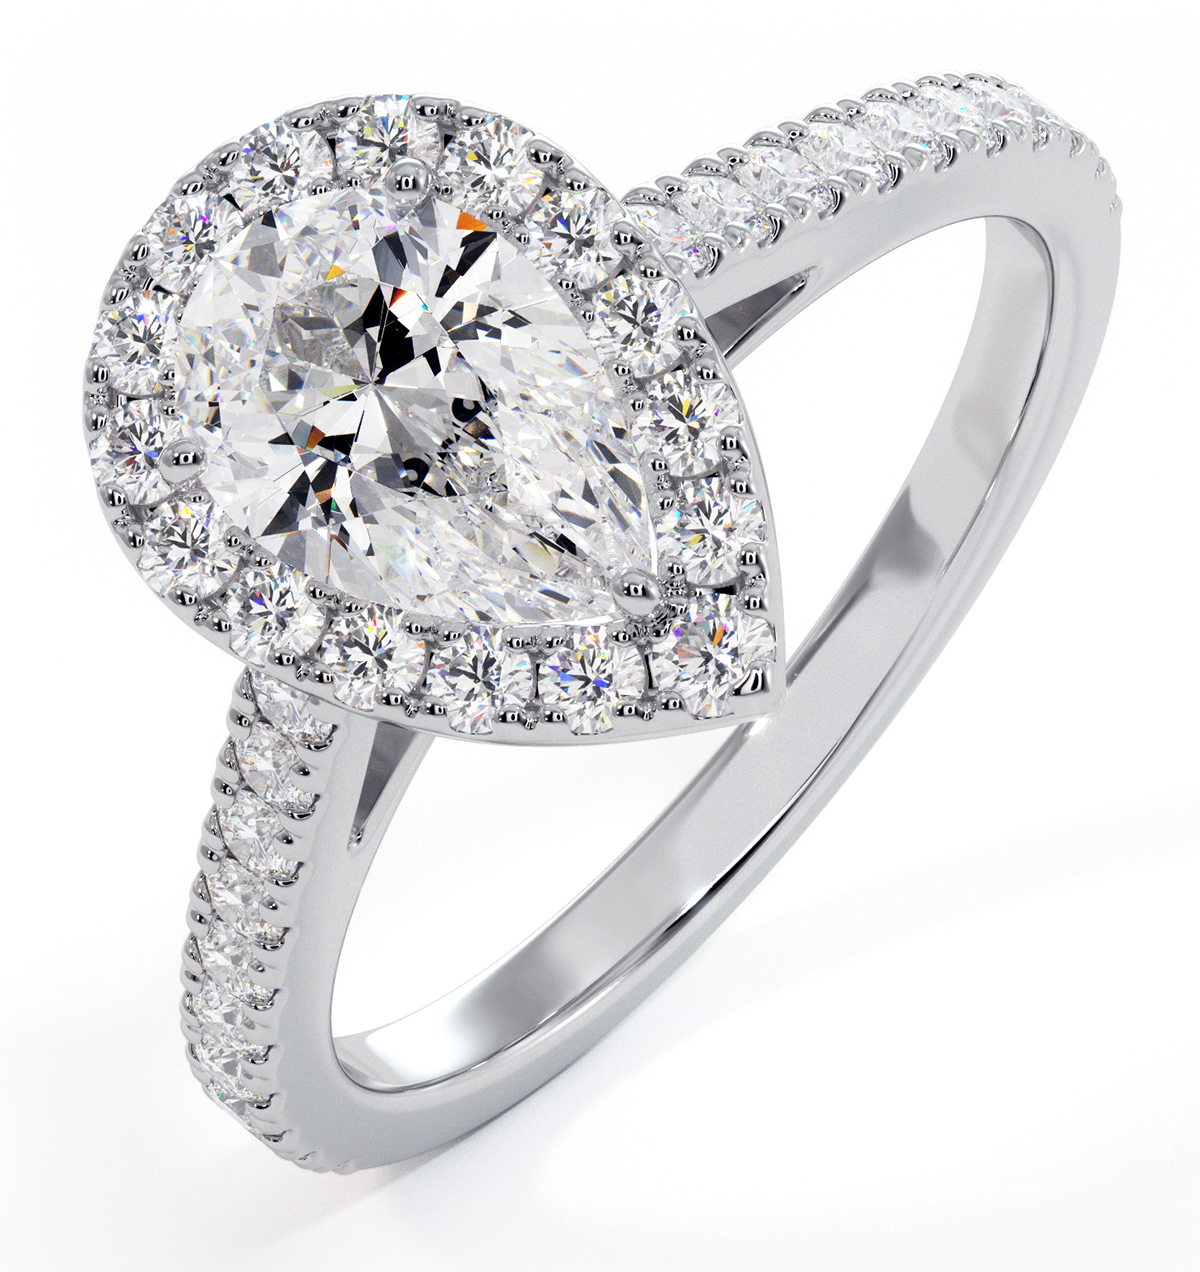 Diana GIA Diamond Pear Halo Engagement Ring 18KW Gold 1.35ct G/SI2 - image 1